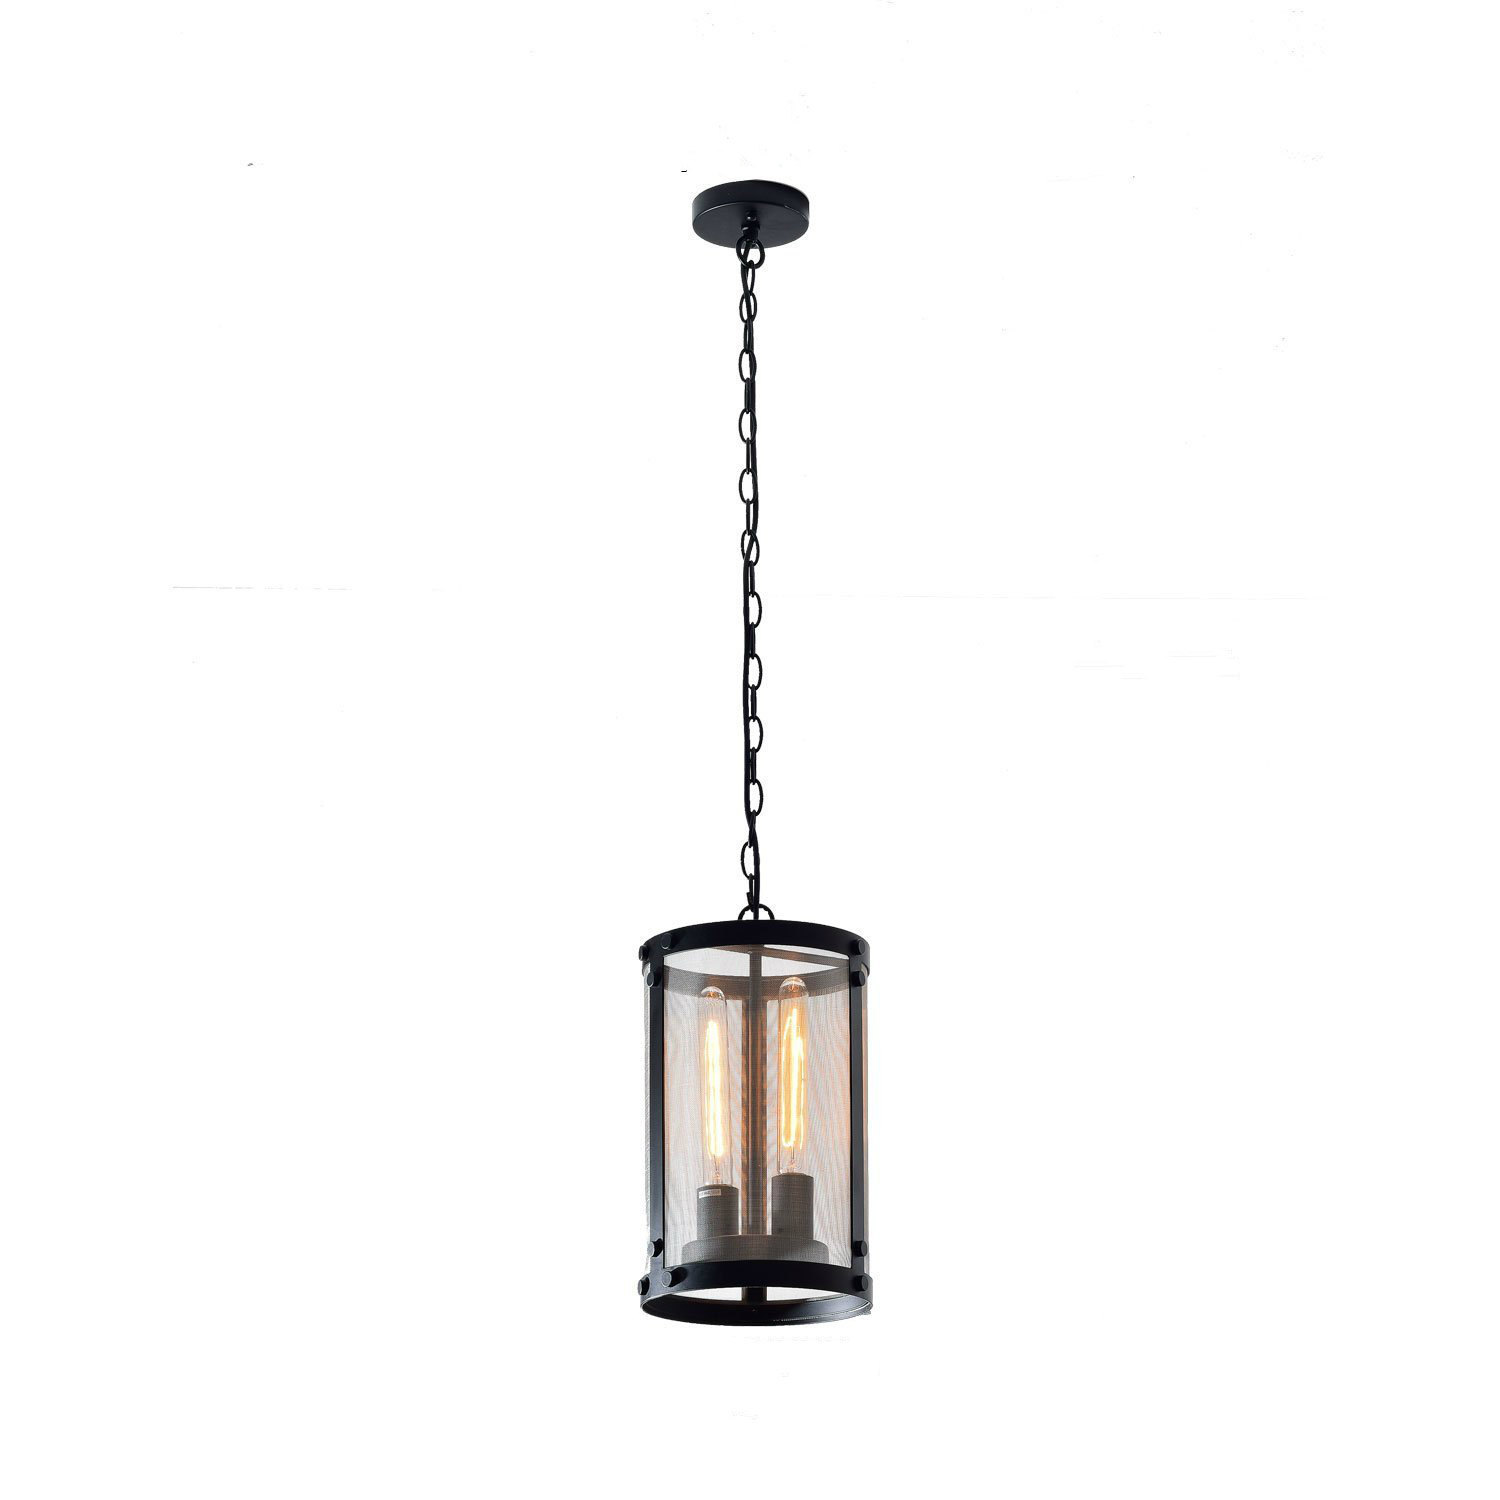 Vintage Black Industrial Pendant Light Chandelier Lighting